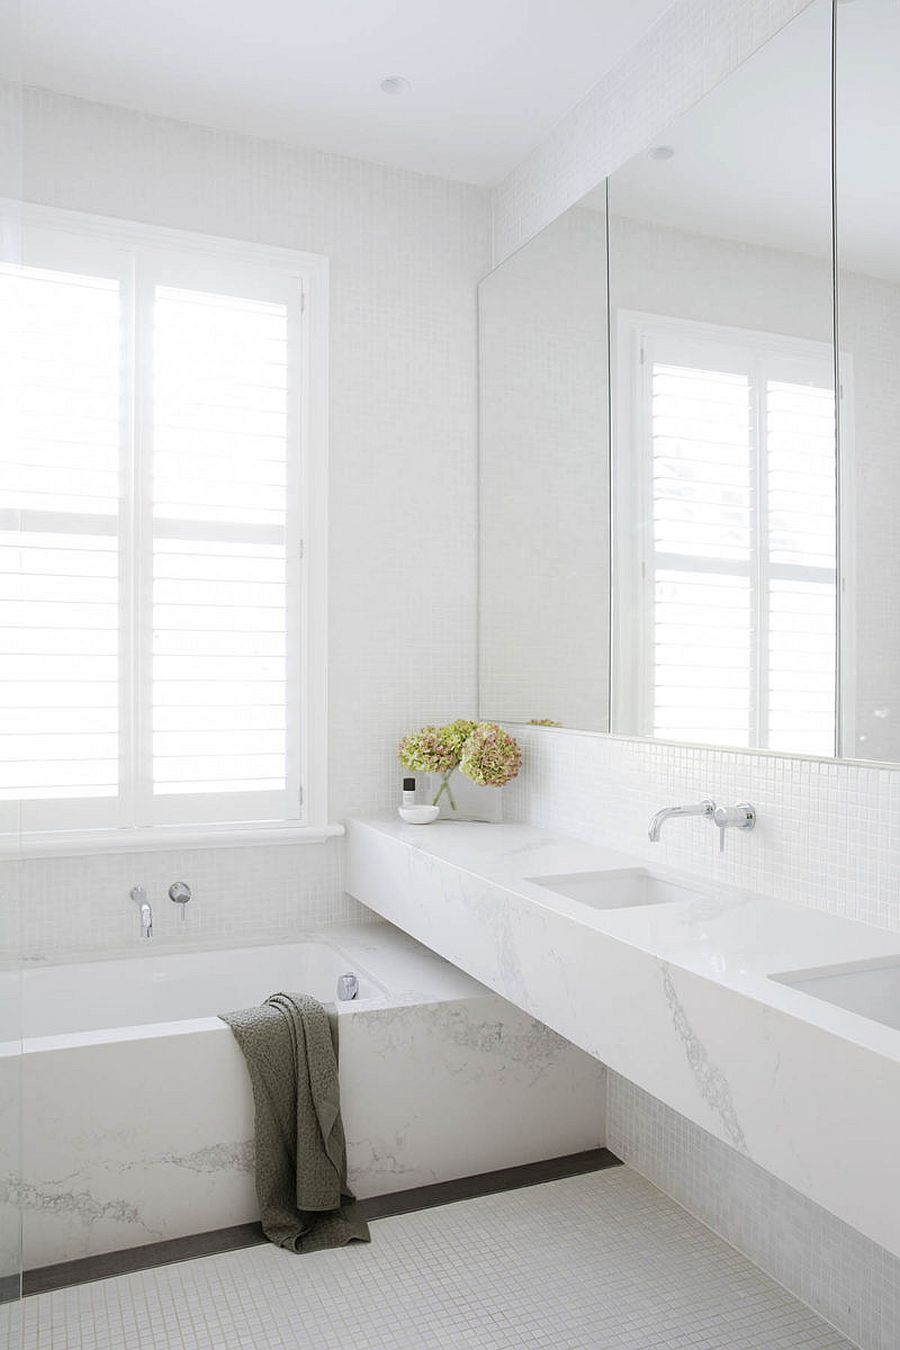 Stone-and-tile-create-a-cool-monochromatic-bathroom-in-white-full-of-light-64921